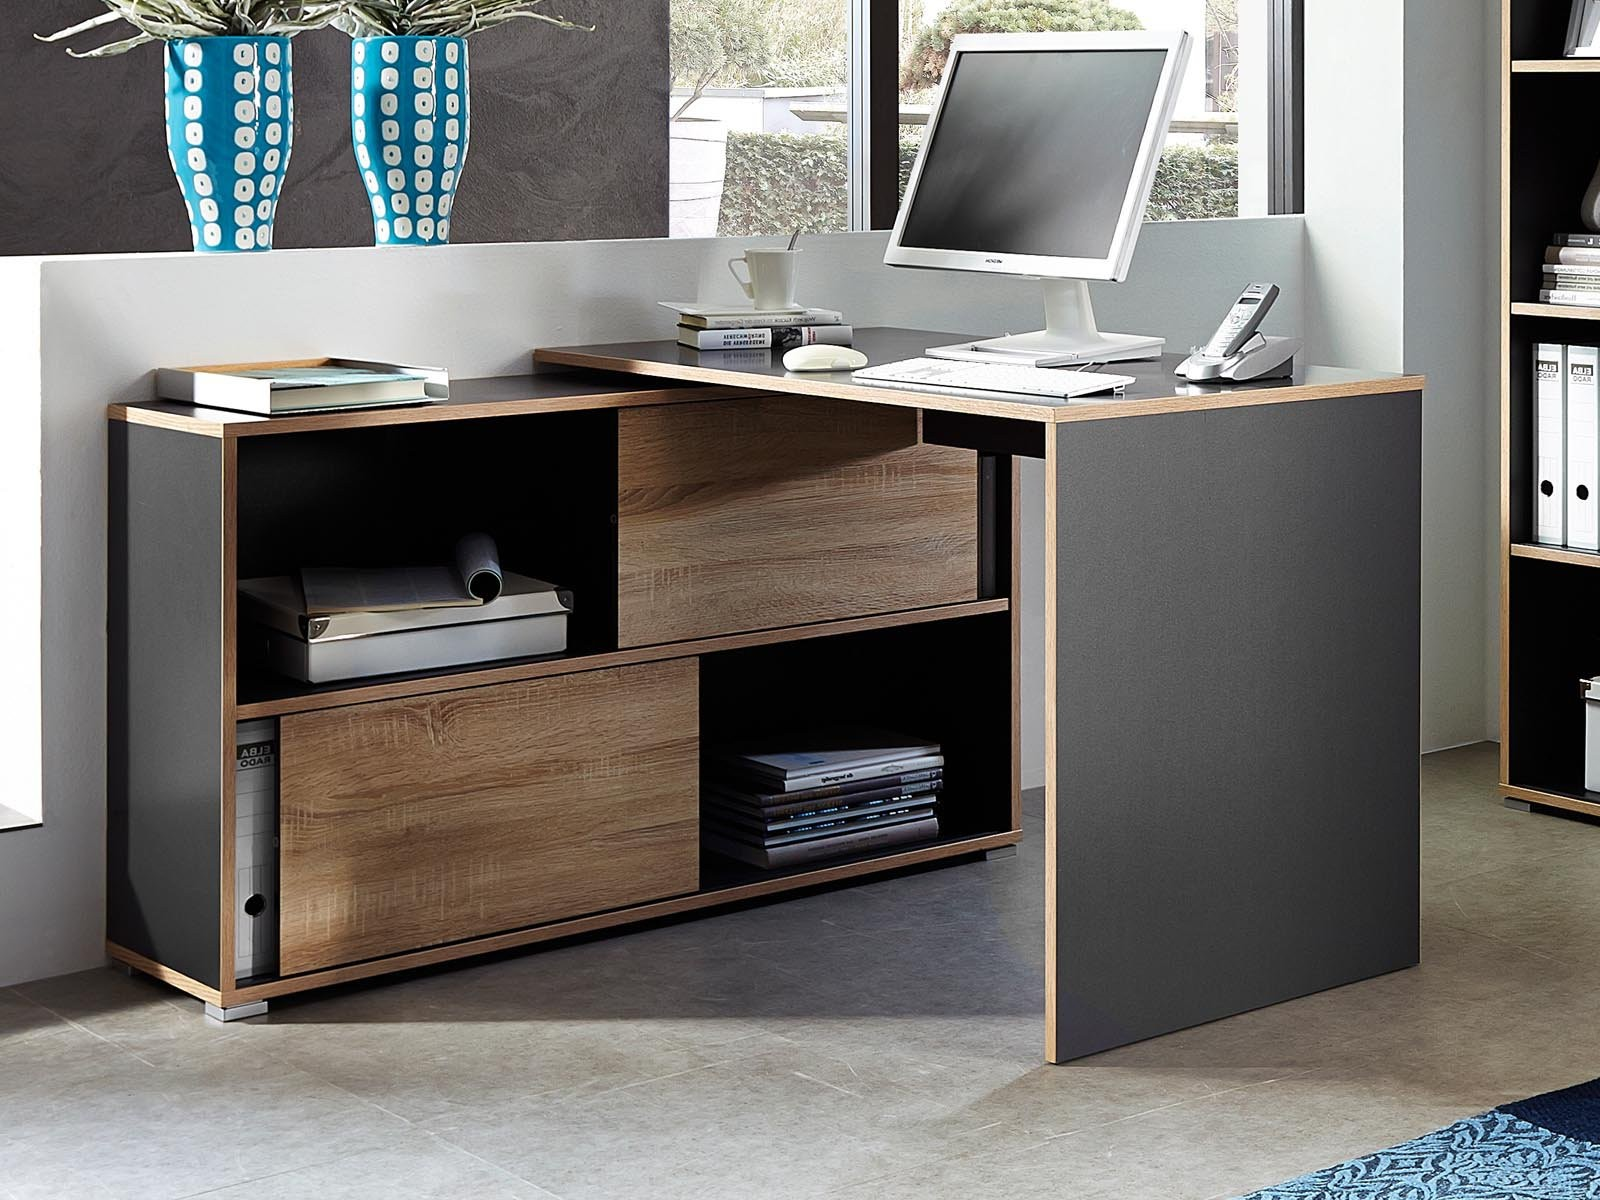 meuble bureau d 39 angle ferm bureau id es de d coration. Black Bedroom Furniture Sets. Home Design Ideas